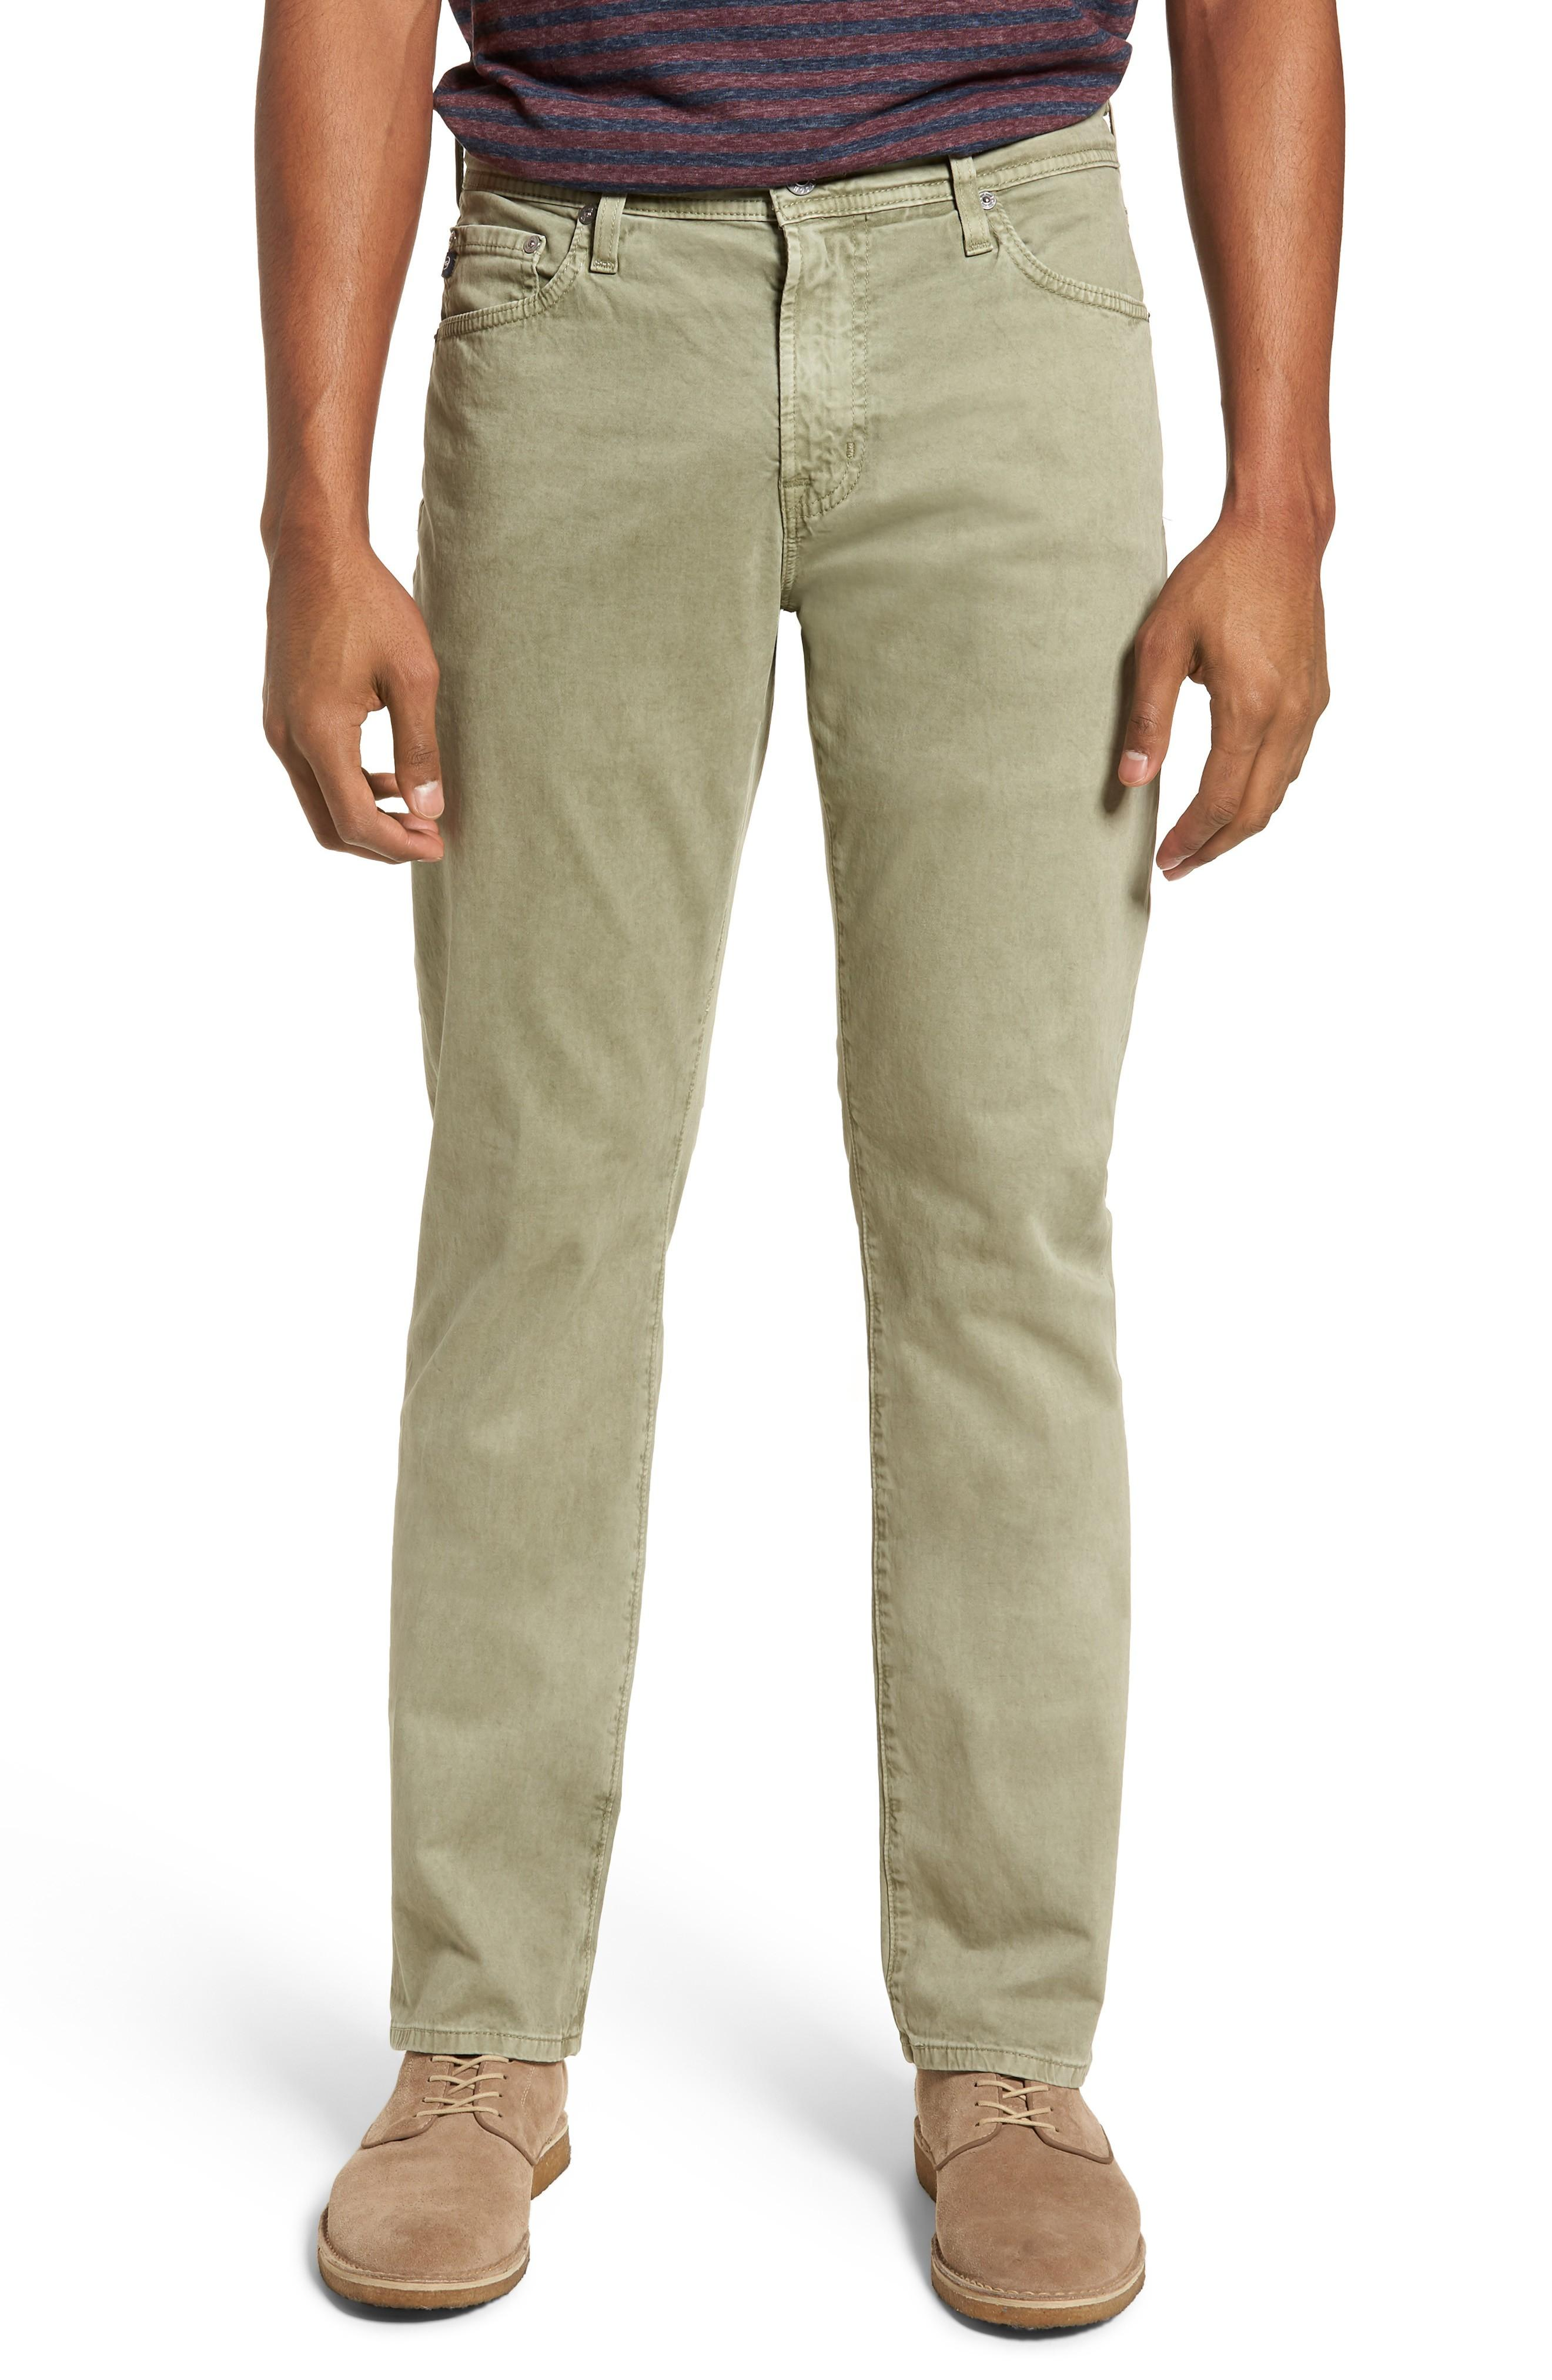 940e0a9a5ef90 Ag Everett Sud Slim Straight Fit Pants In Sulfur Dry Cypress